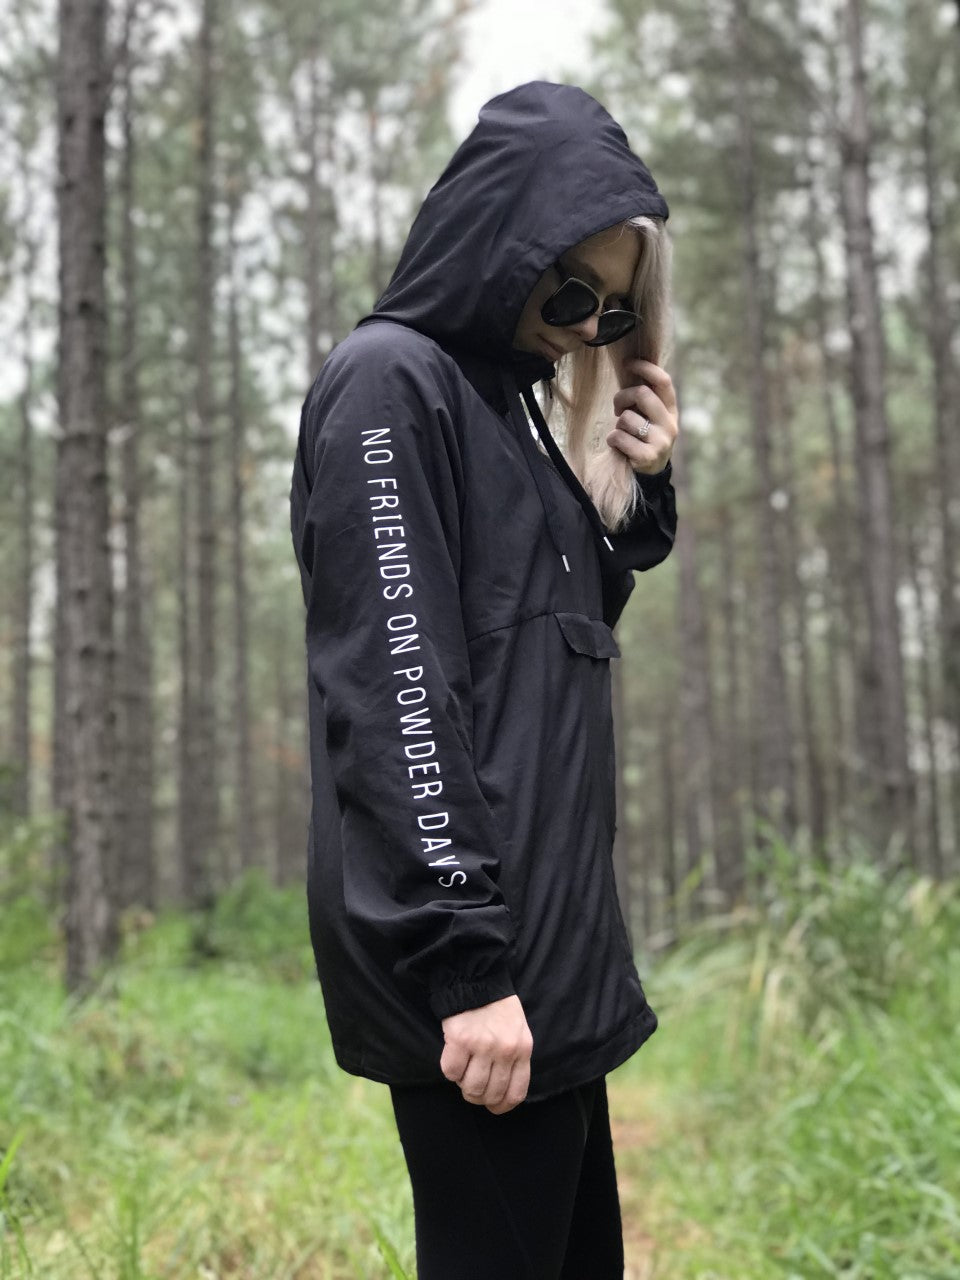 Black Water Resistant Windbreaker Jacket - Unisex